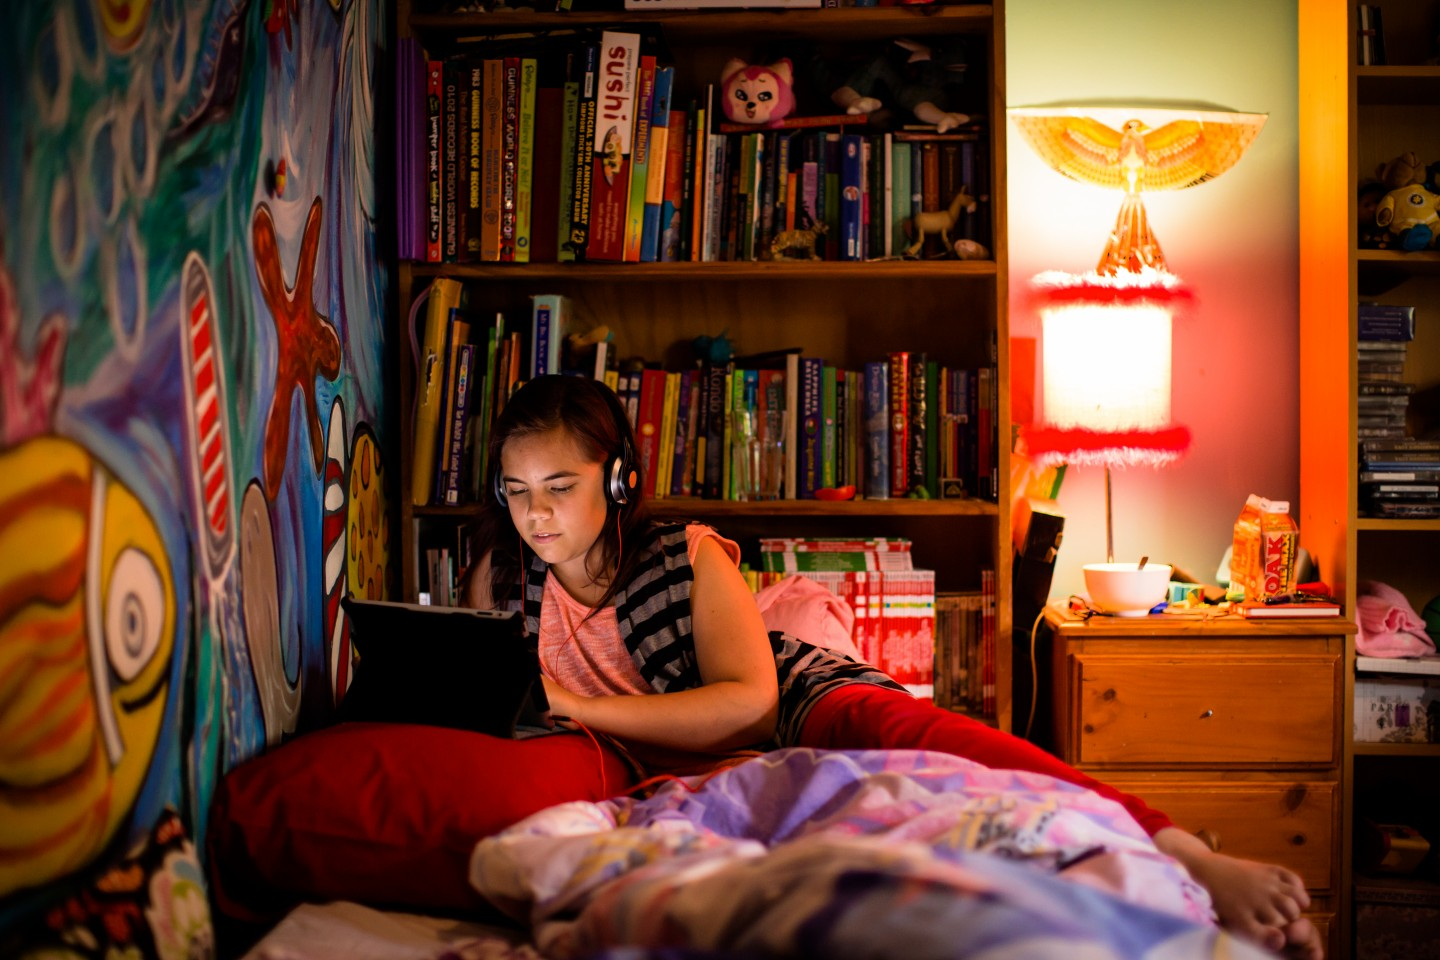 Young person on laptop in front of bookcase in bedroom.